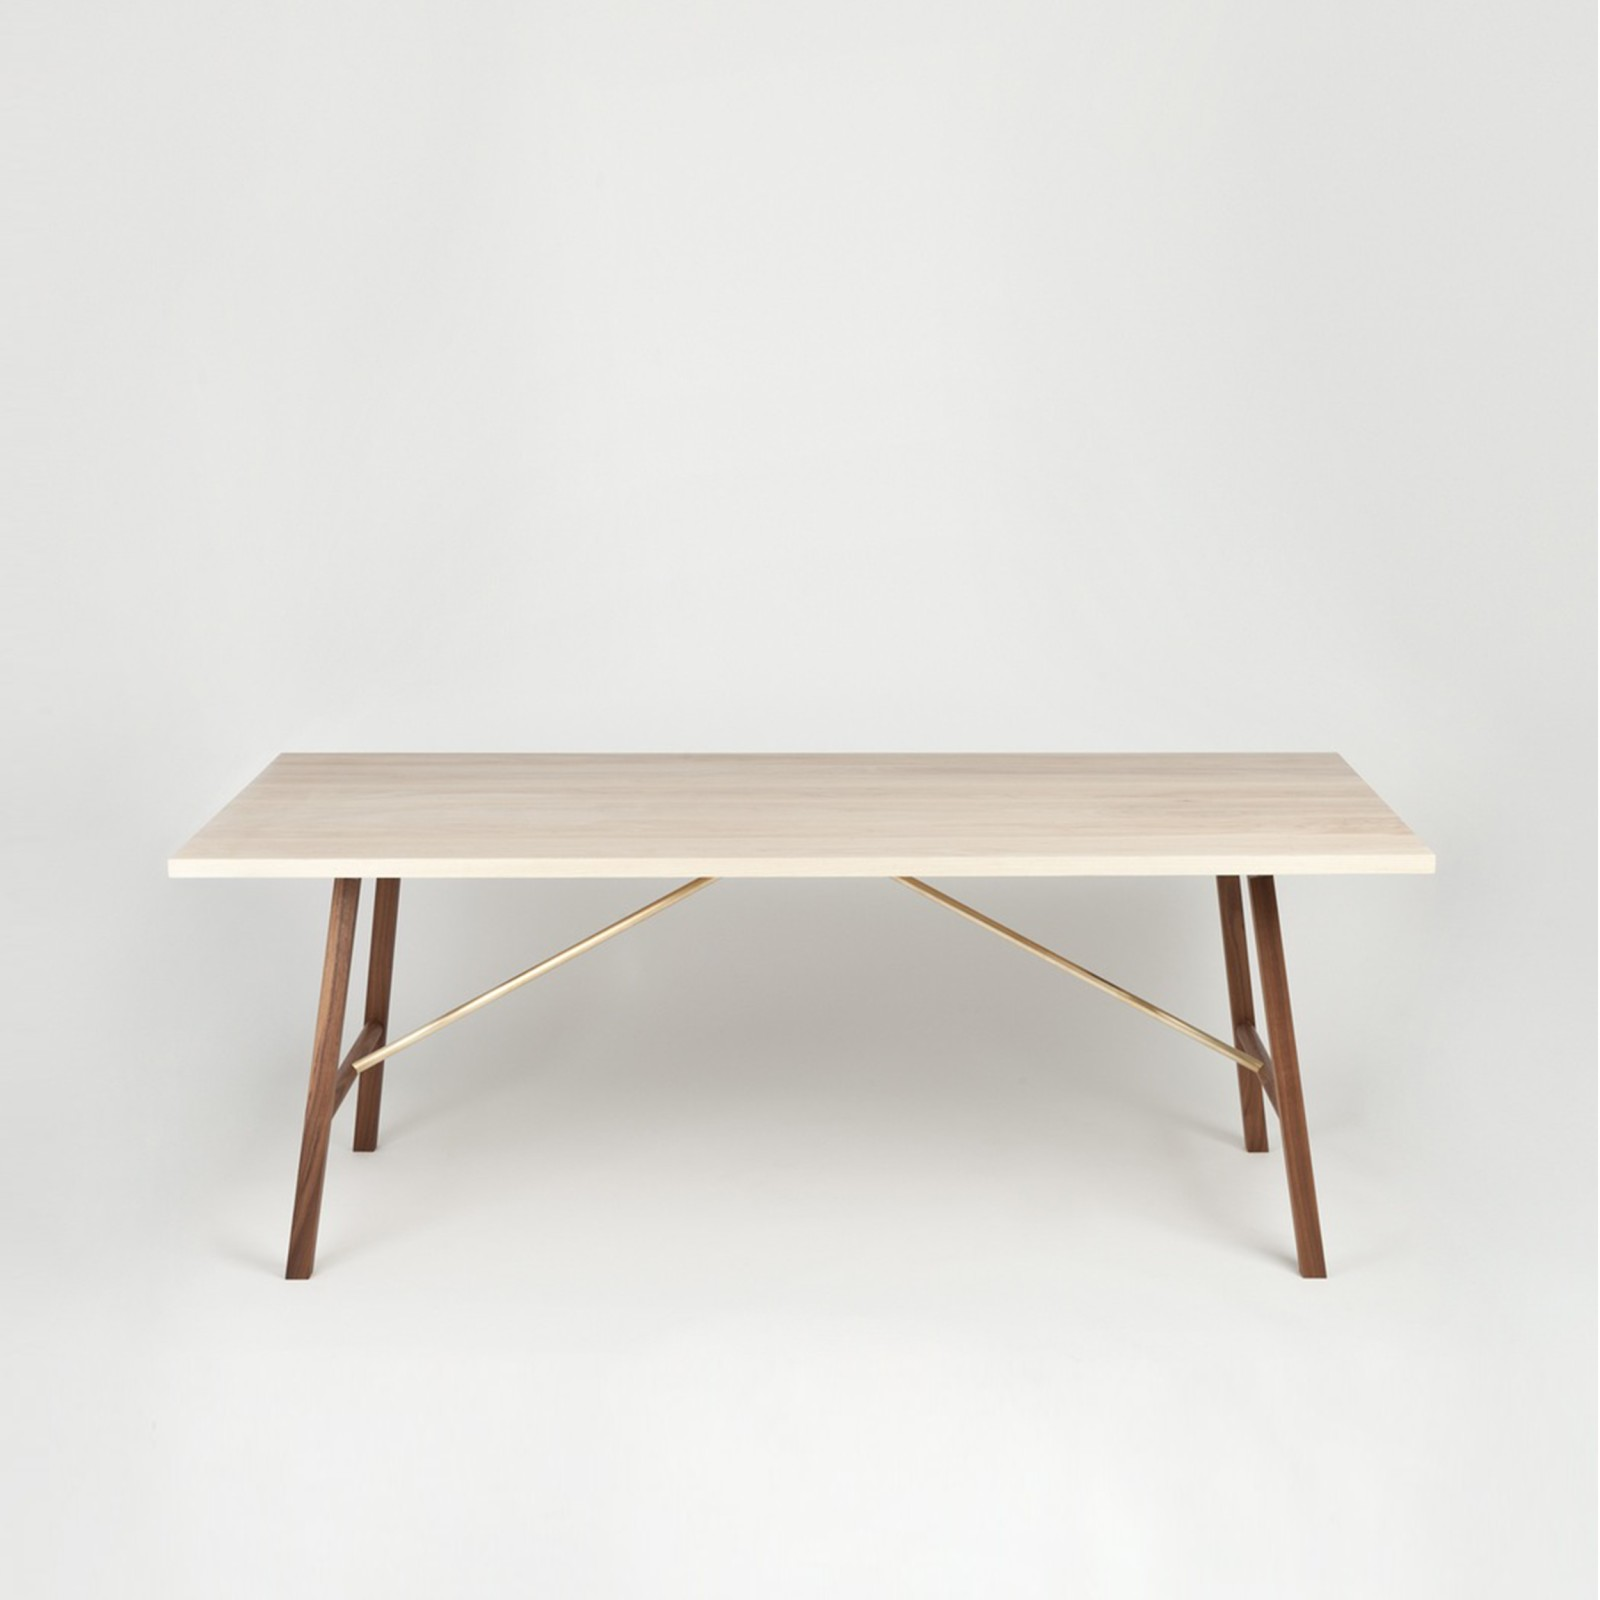 Dining Table Two Ash & Walnut, 220 cm Long